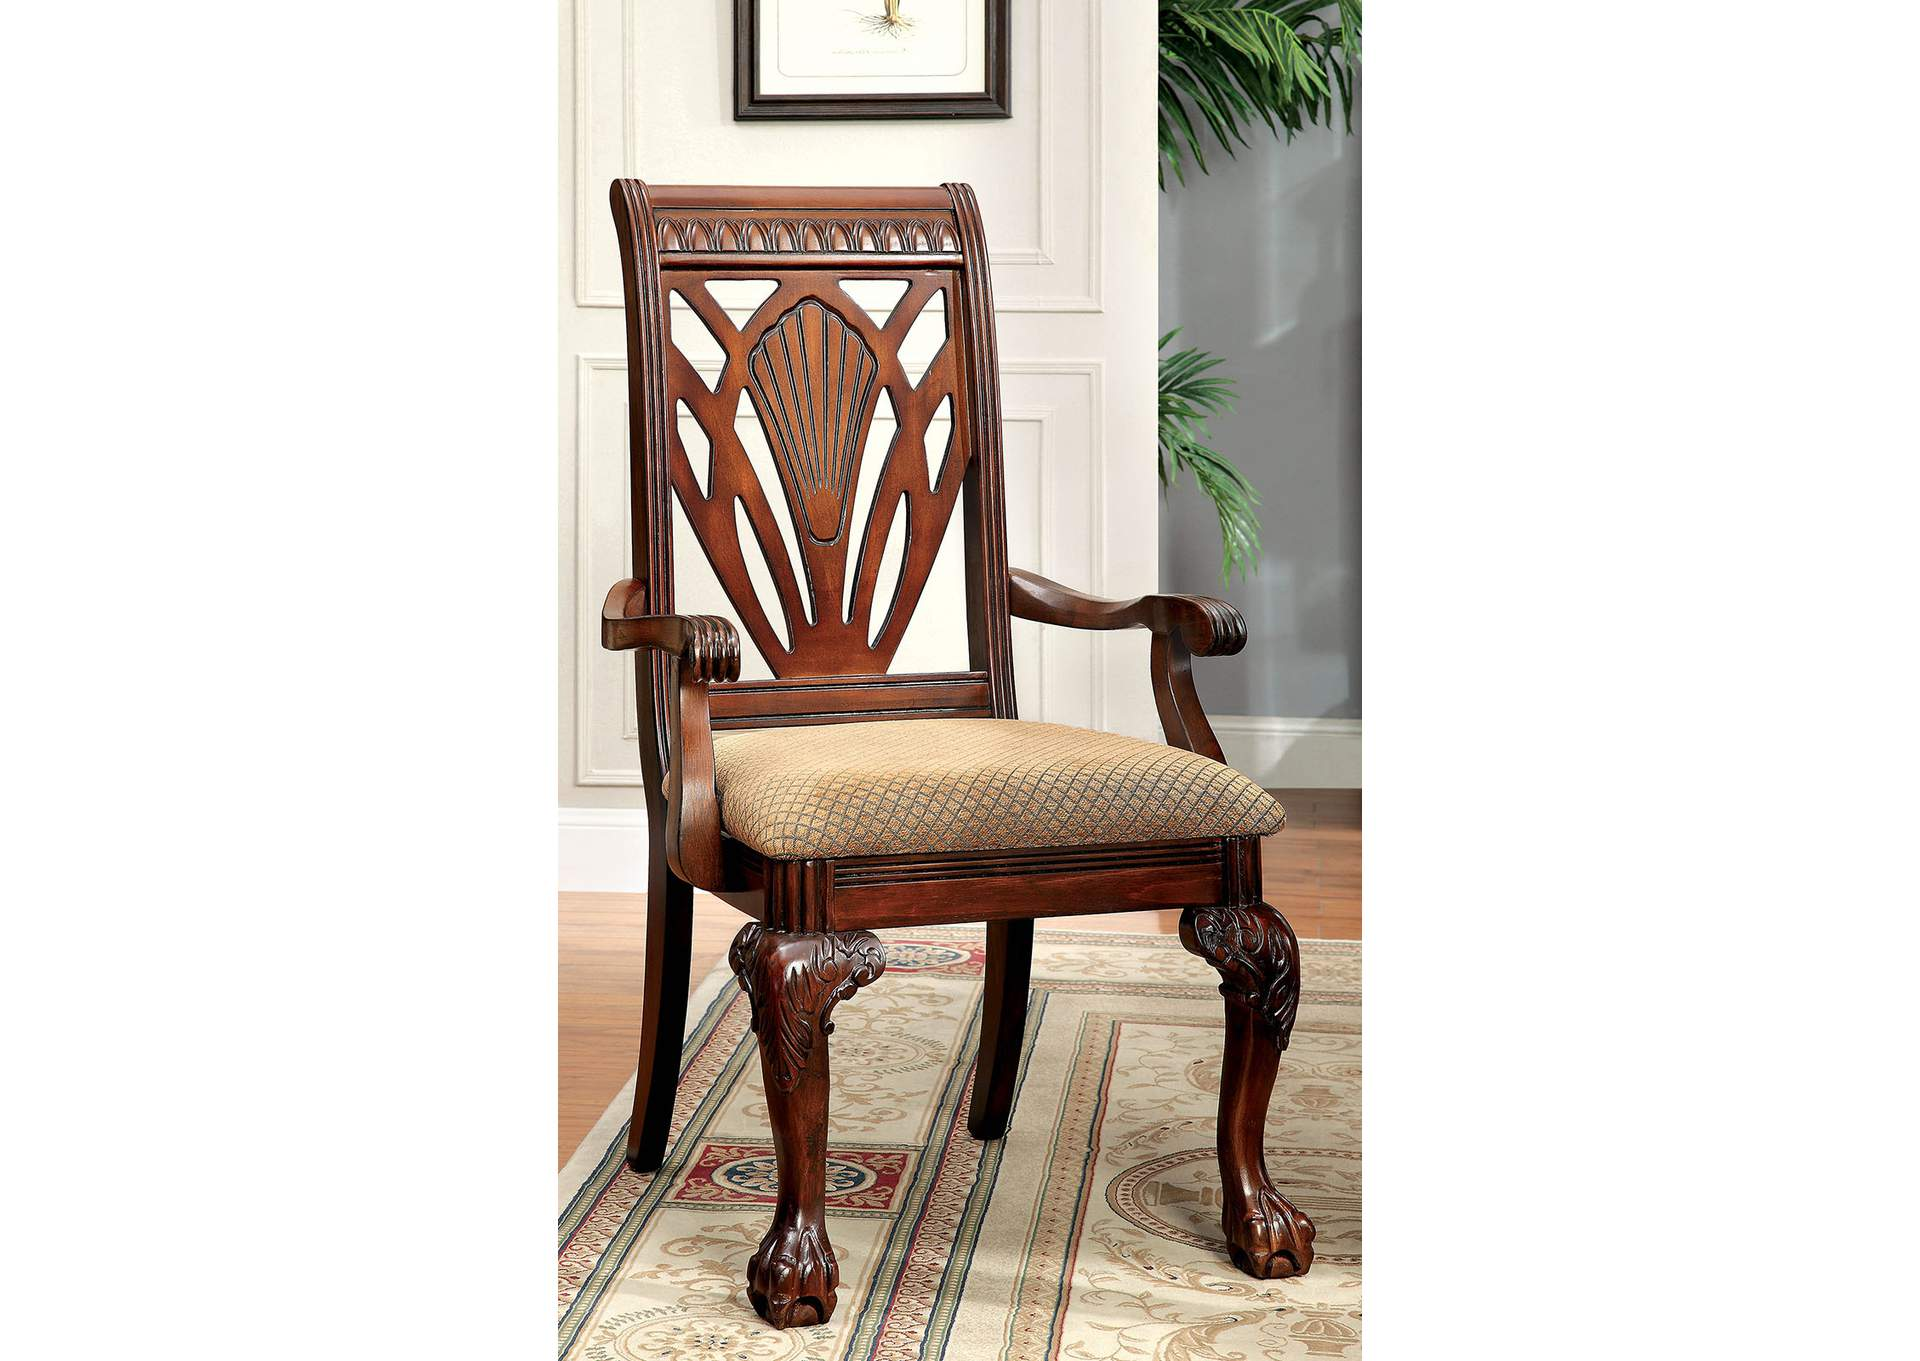 Petersburg l Cherry Arm Chair (Set of 2),Furniture of America